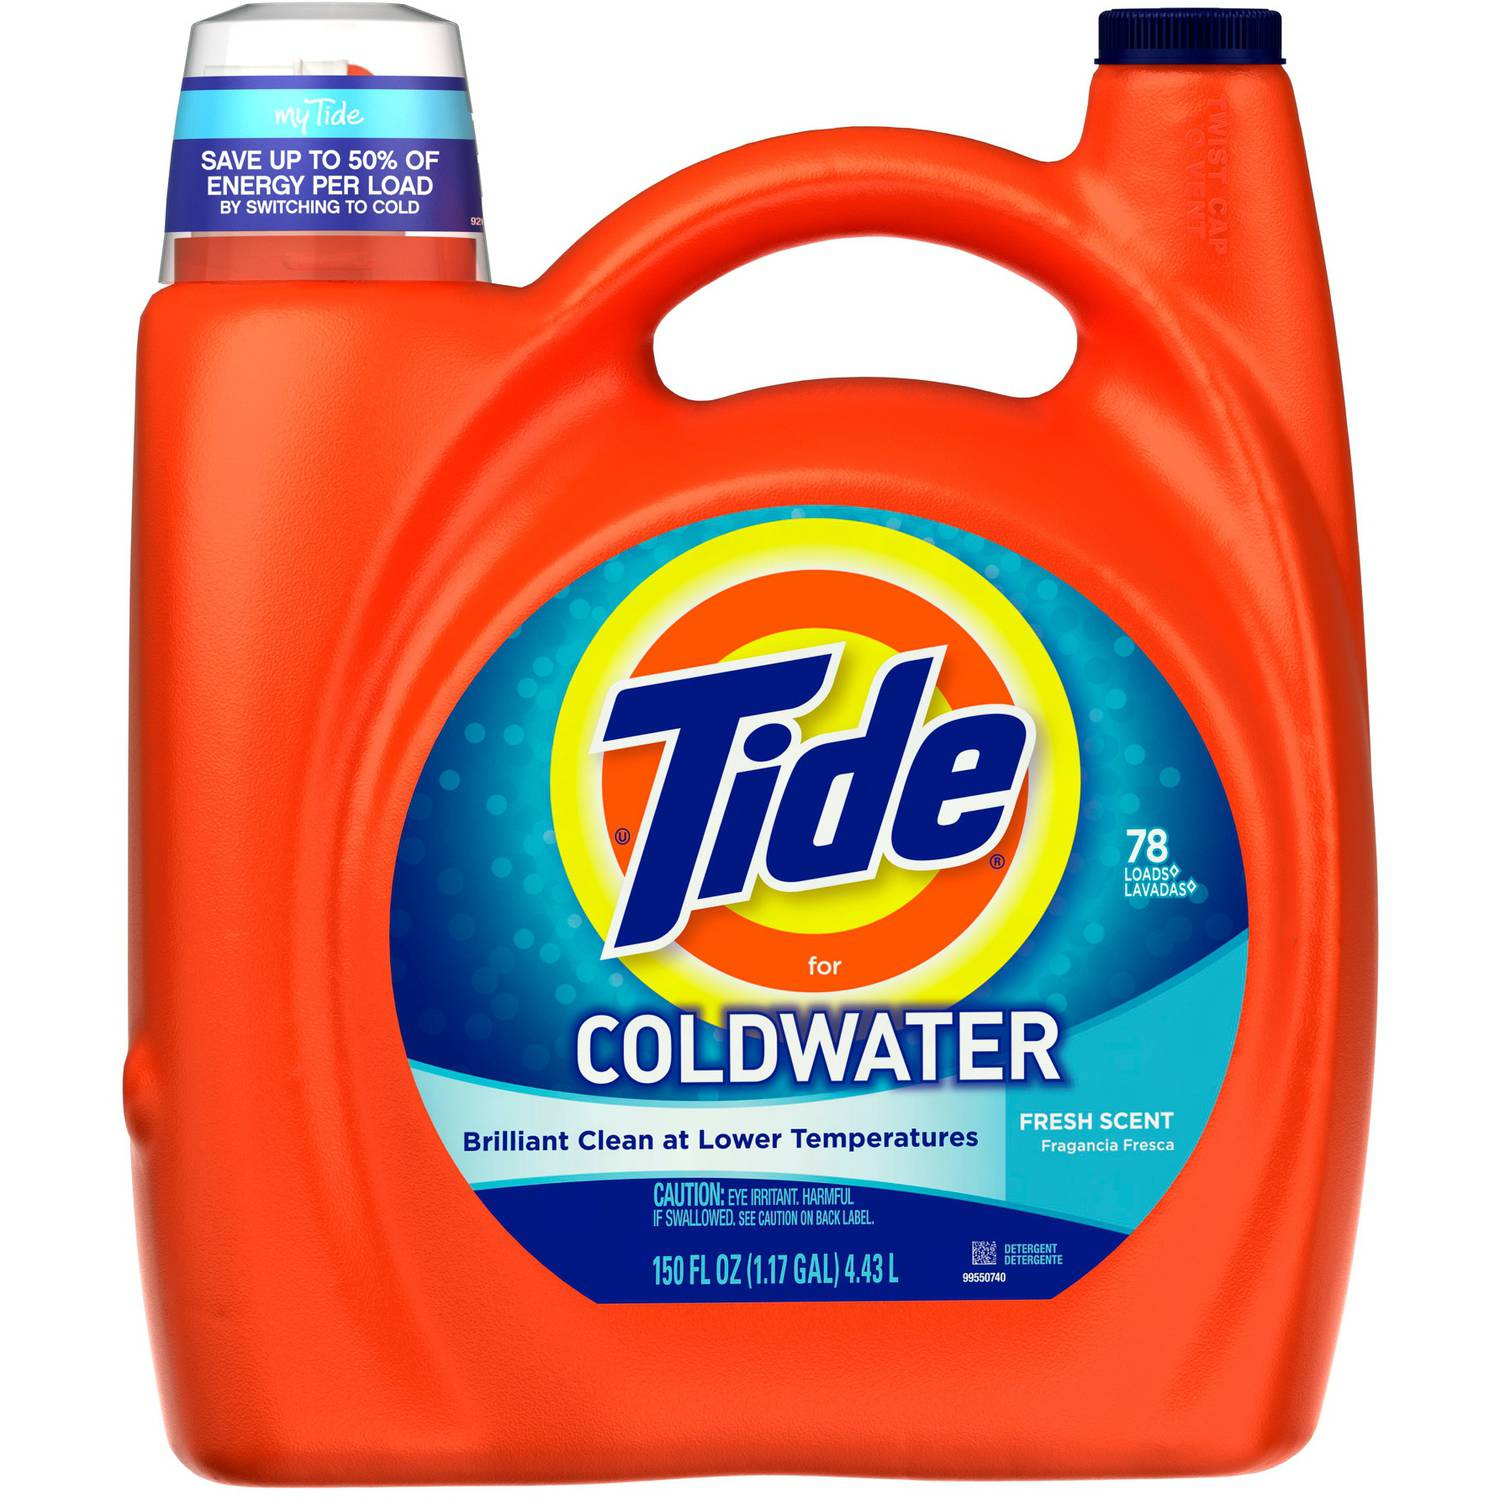 Tide Liquid Laundry Detergent For Cold Water, Fresh Scent, 150 fl oz